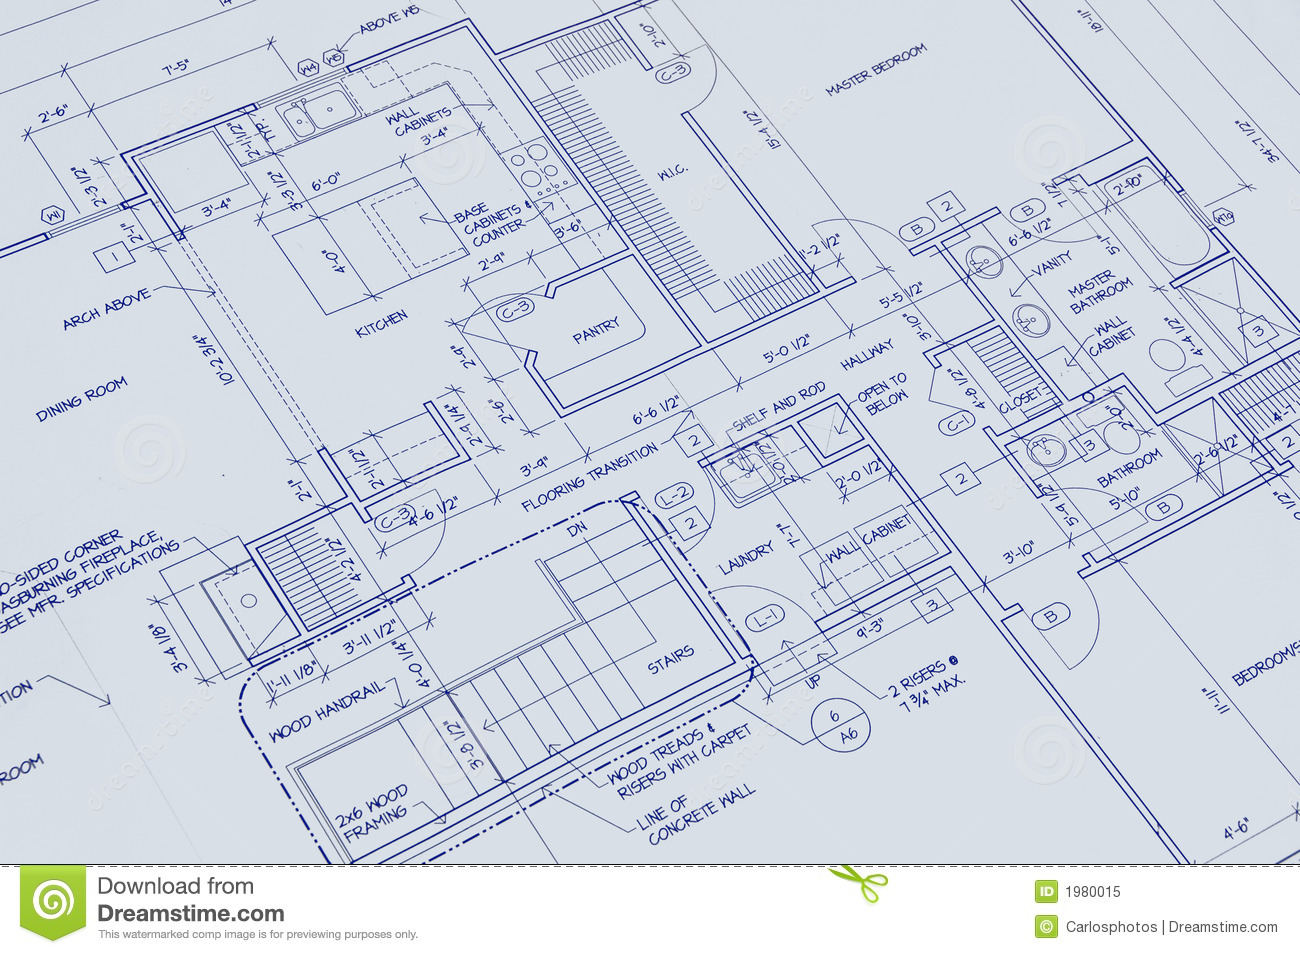 Https Www Dreamstime Com Royalty Free Stock Photo Blueprint House Image1980015